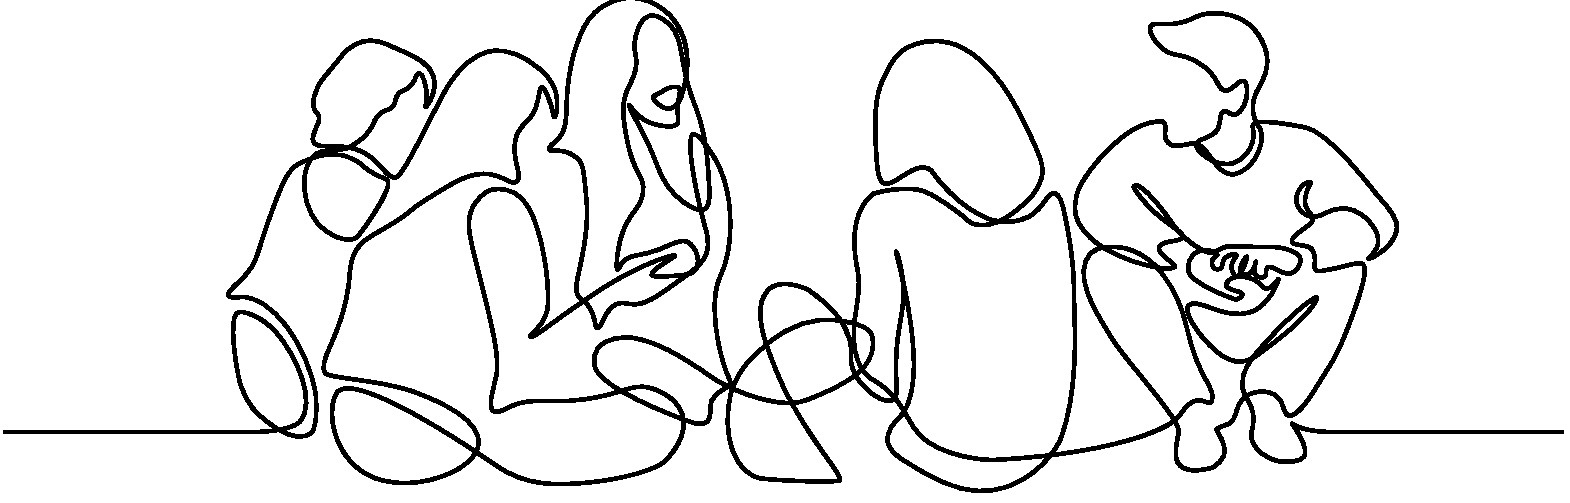 Line drawing of a group of people sitting and talking on the floor. It is one single connecting line.